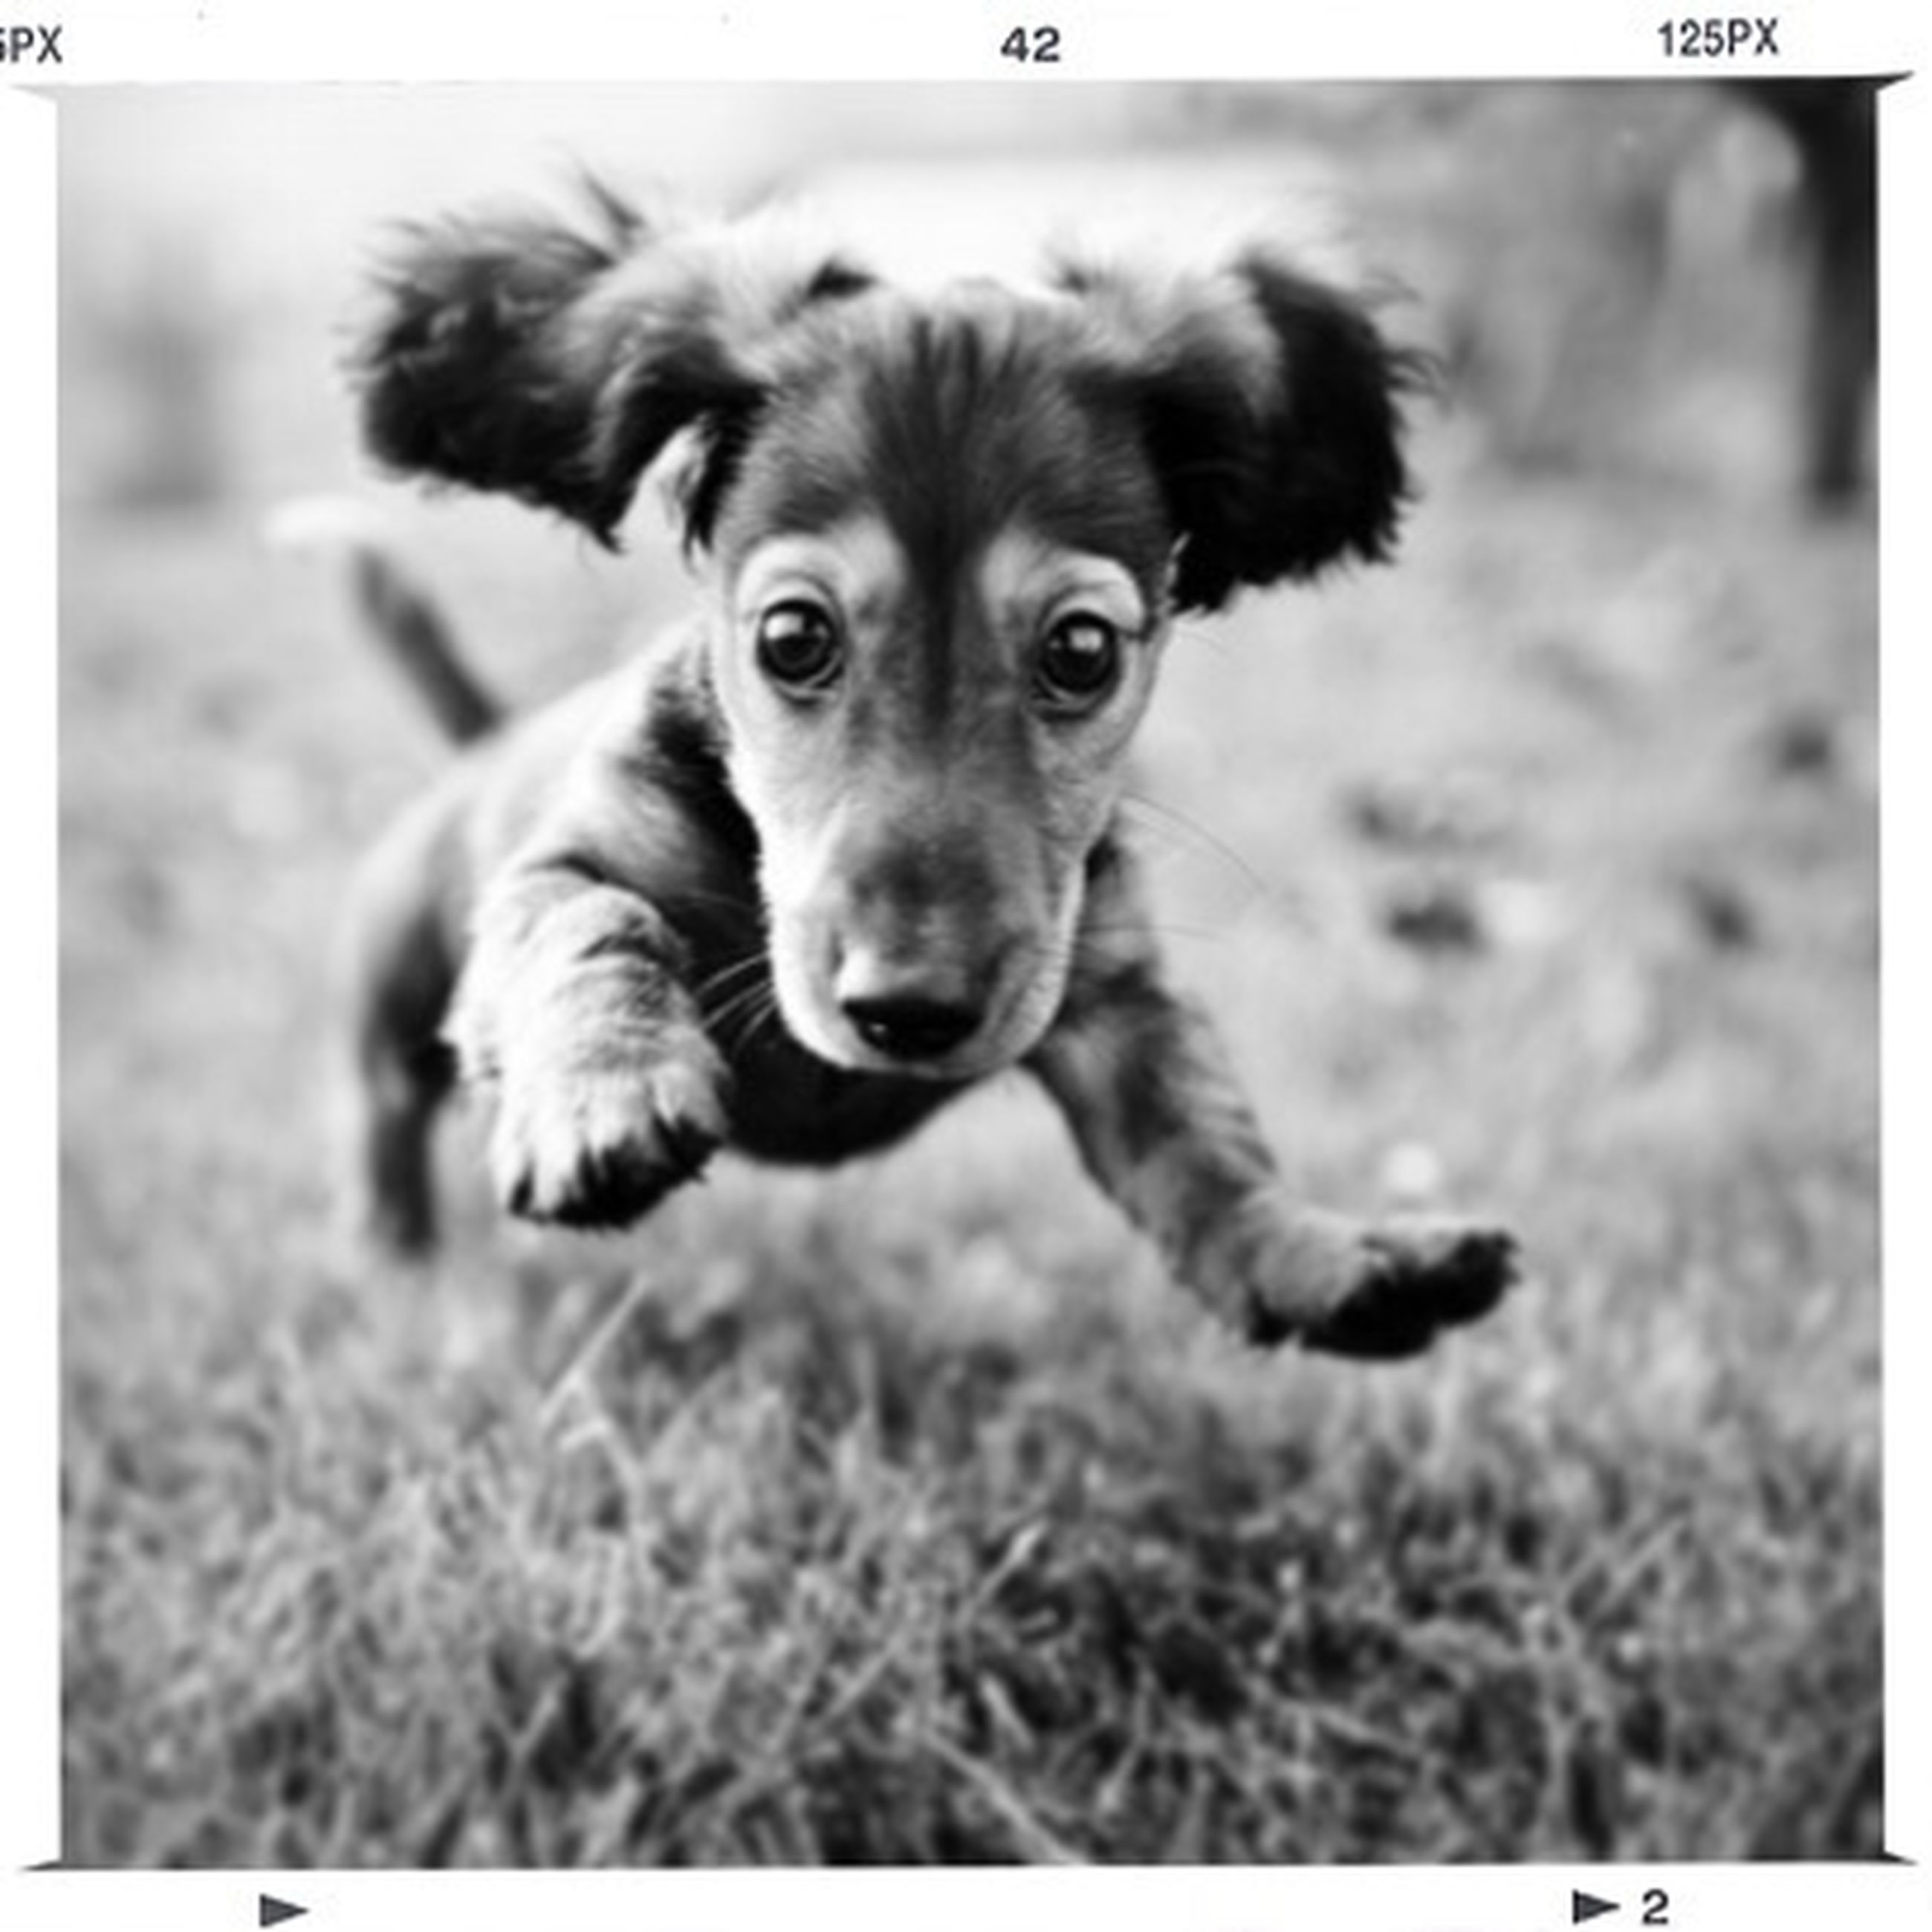 dog, pets, one animal, animal themes, domestic animals, grass, mammal, looking at camera, transfer print, field, portrait, auto post production filter, grassy, focus on foreground, selective focus, close-up, sitting, puppy, cute, day